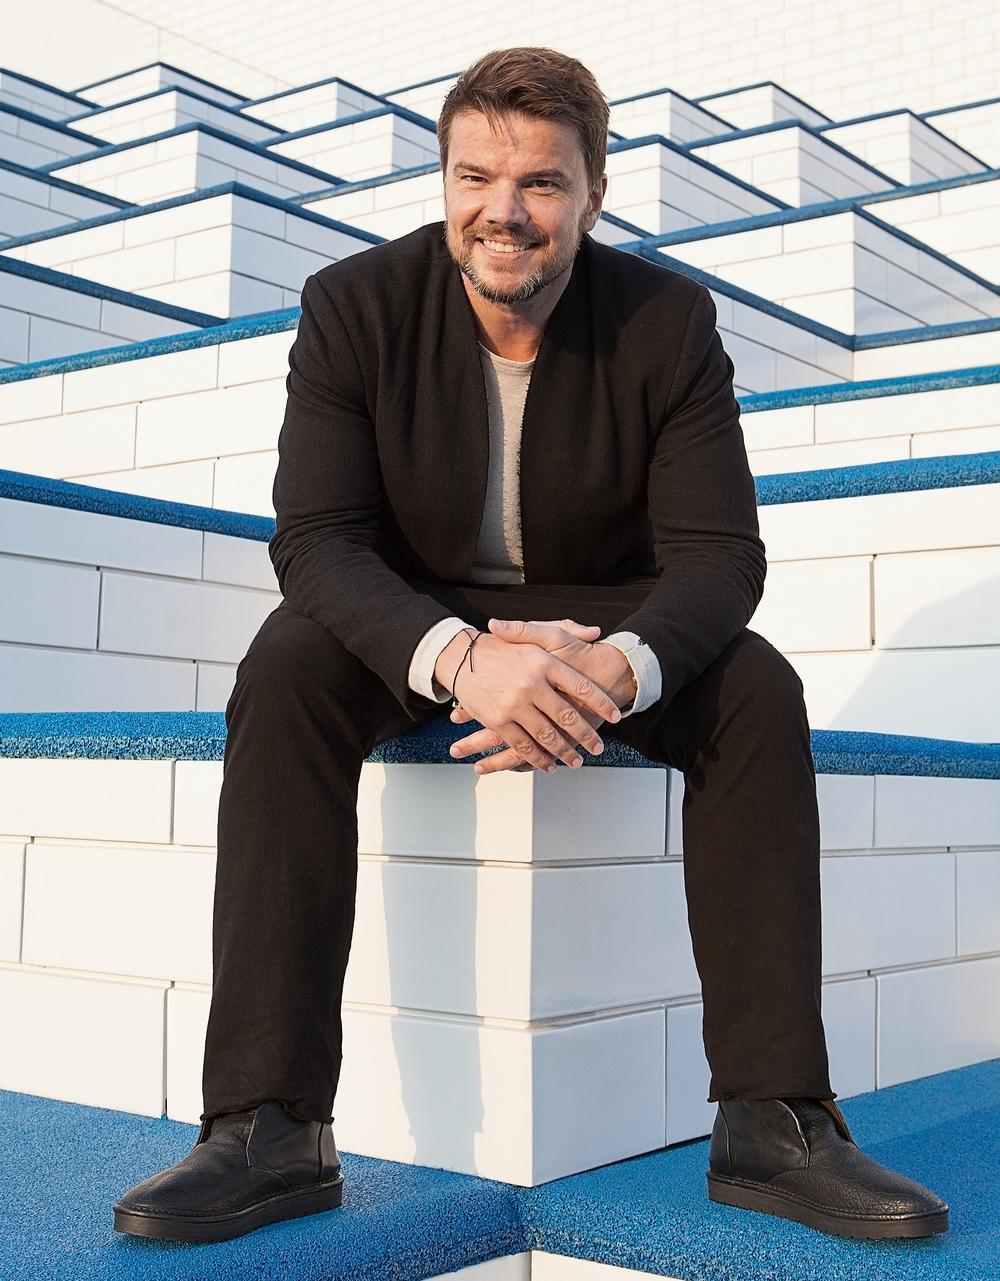 Bjarke Ingels told CLAD about his latest projects, his changing focus and the role of his team in BIG's success / Paul McLaughlin